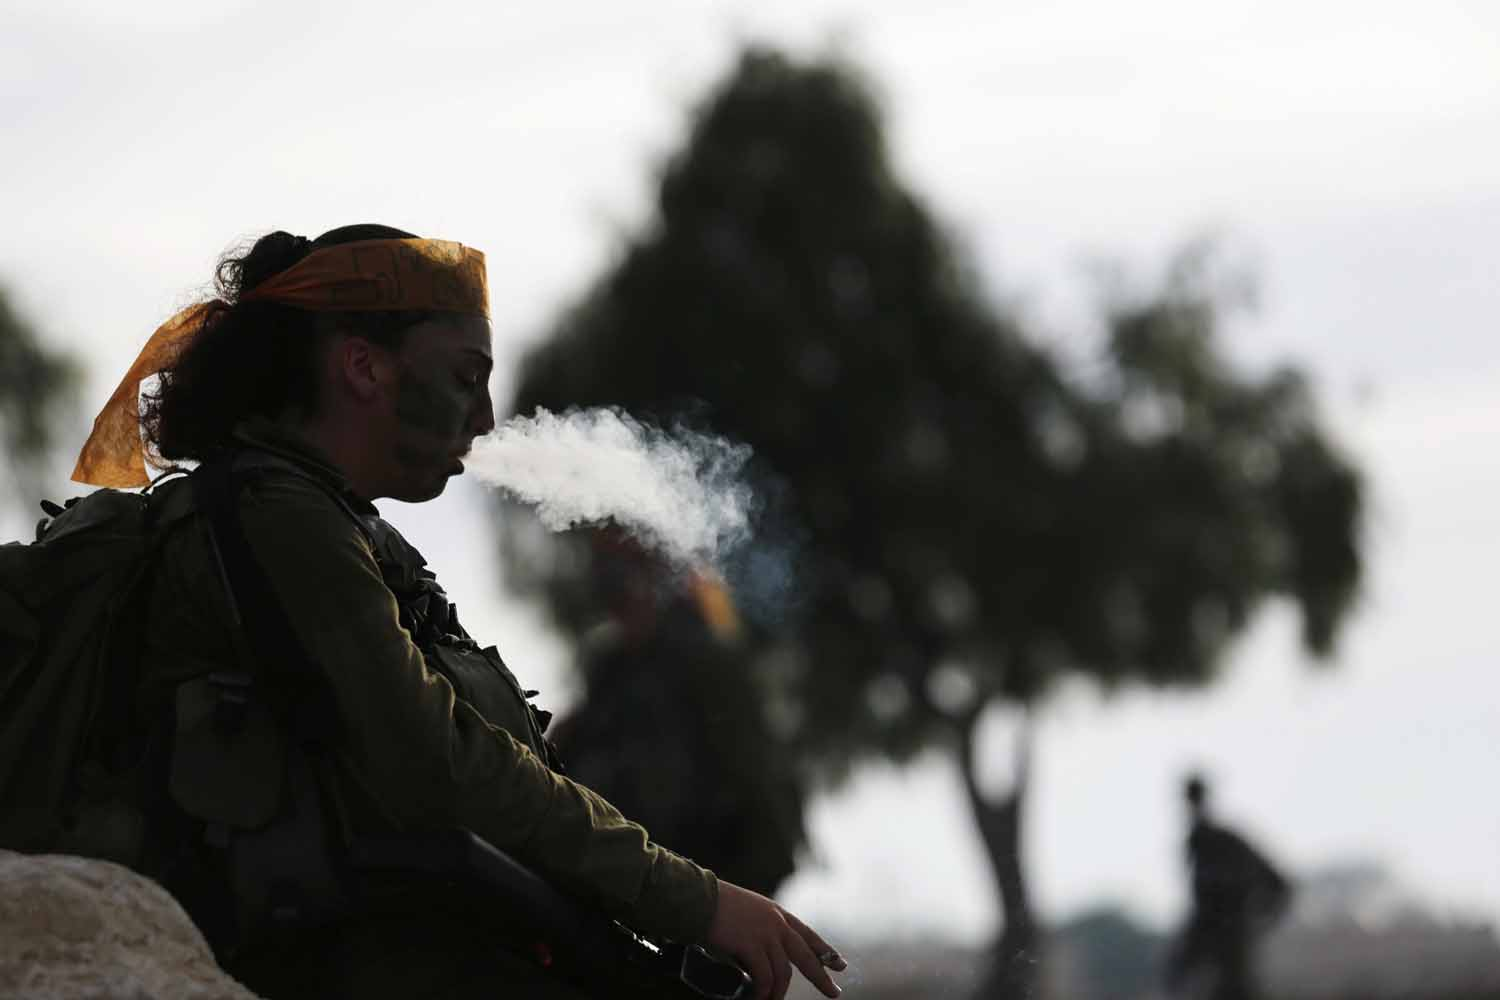 May 29, 2014. A female Israeli soldier of the Caracal battalion smokes after finishing a 20-kilometre march in Israel's Negev desert, near Kibbutz Sde Boker, marking the end of their training.